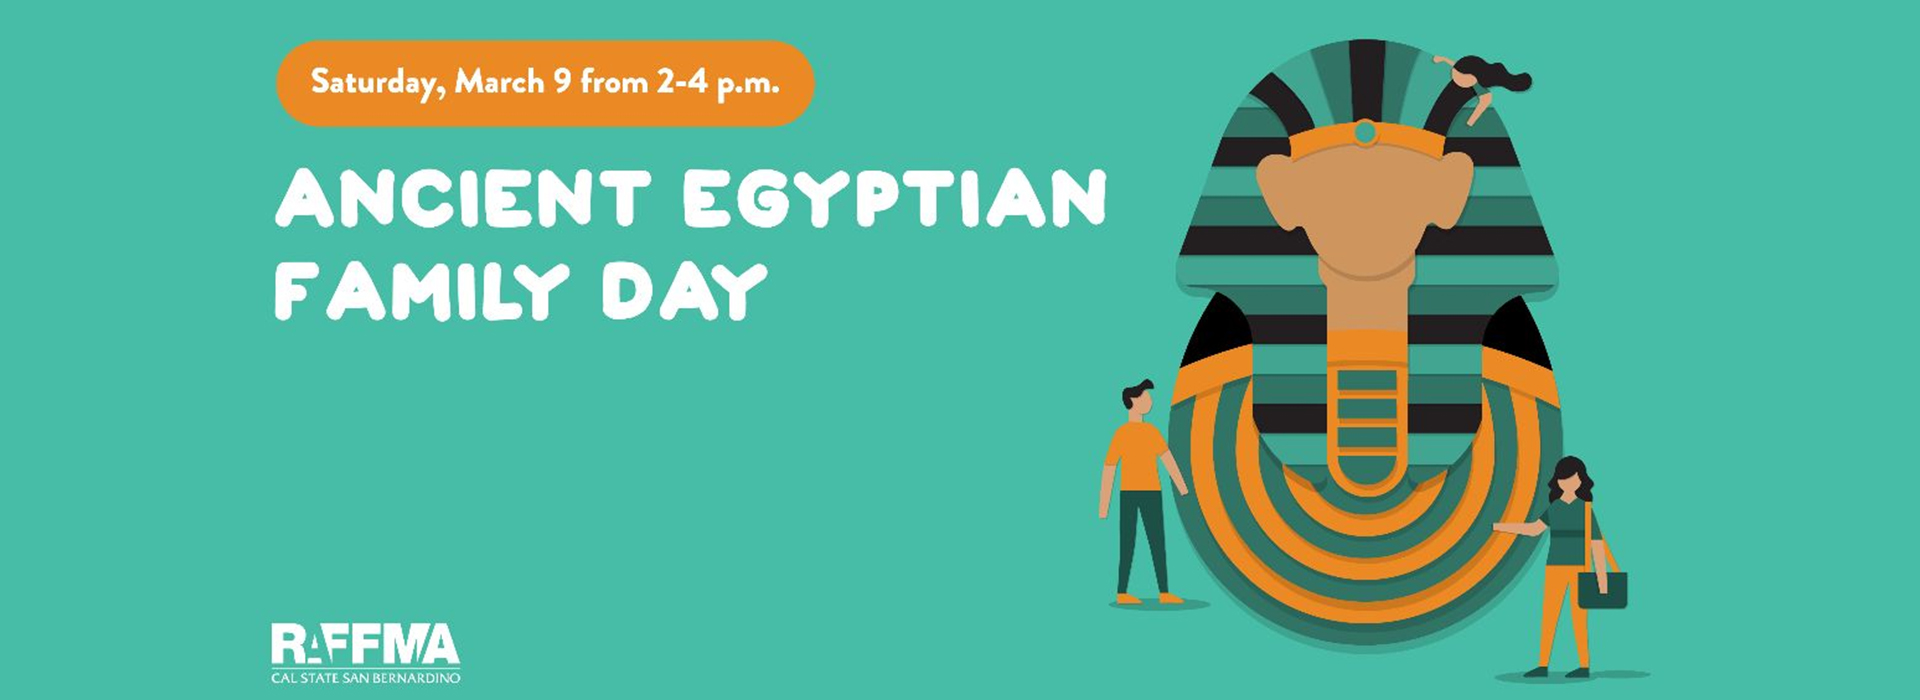 Ancient Egyptian Family Day coming to CSUSB's art museum March 9